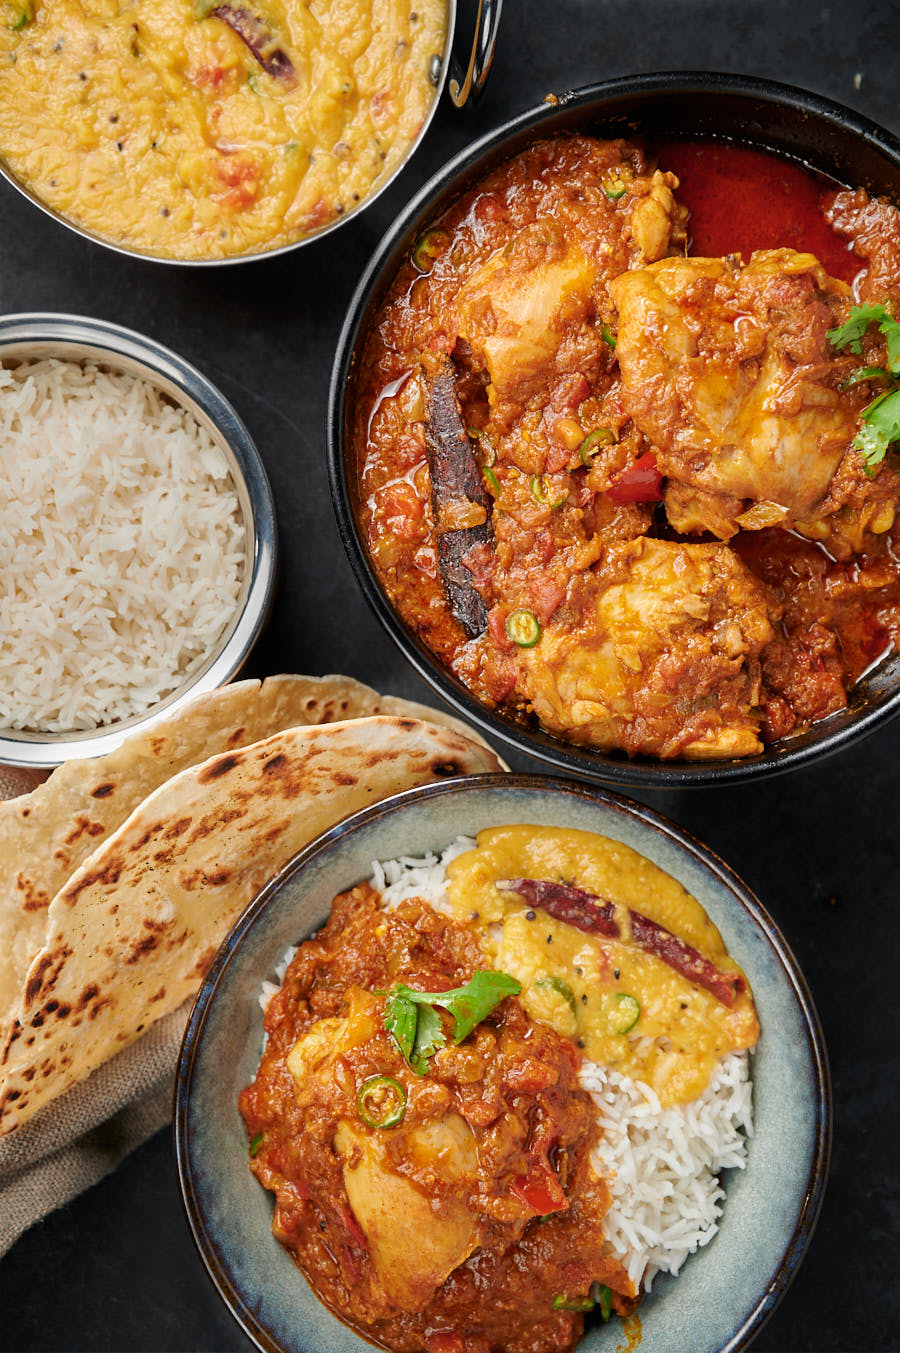 Simple chicken curry in a serving bowl with rice, paratha, and dal from above.